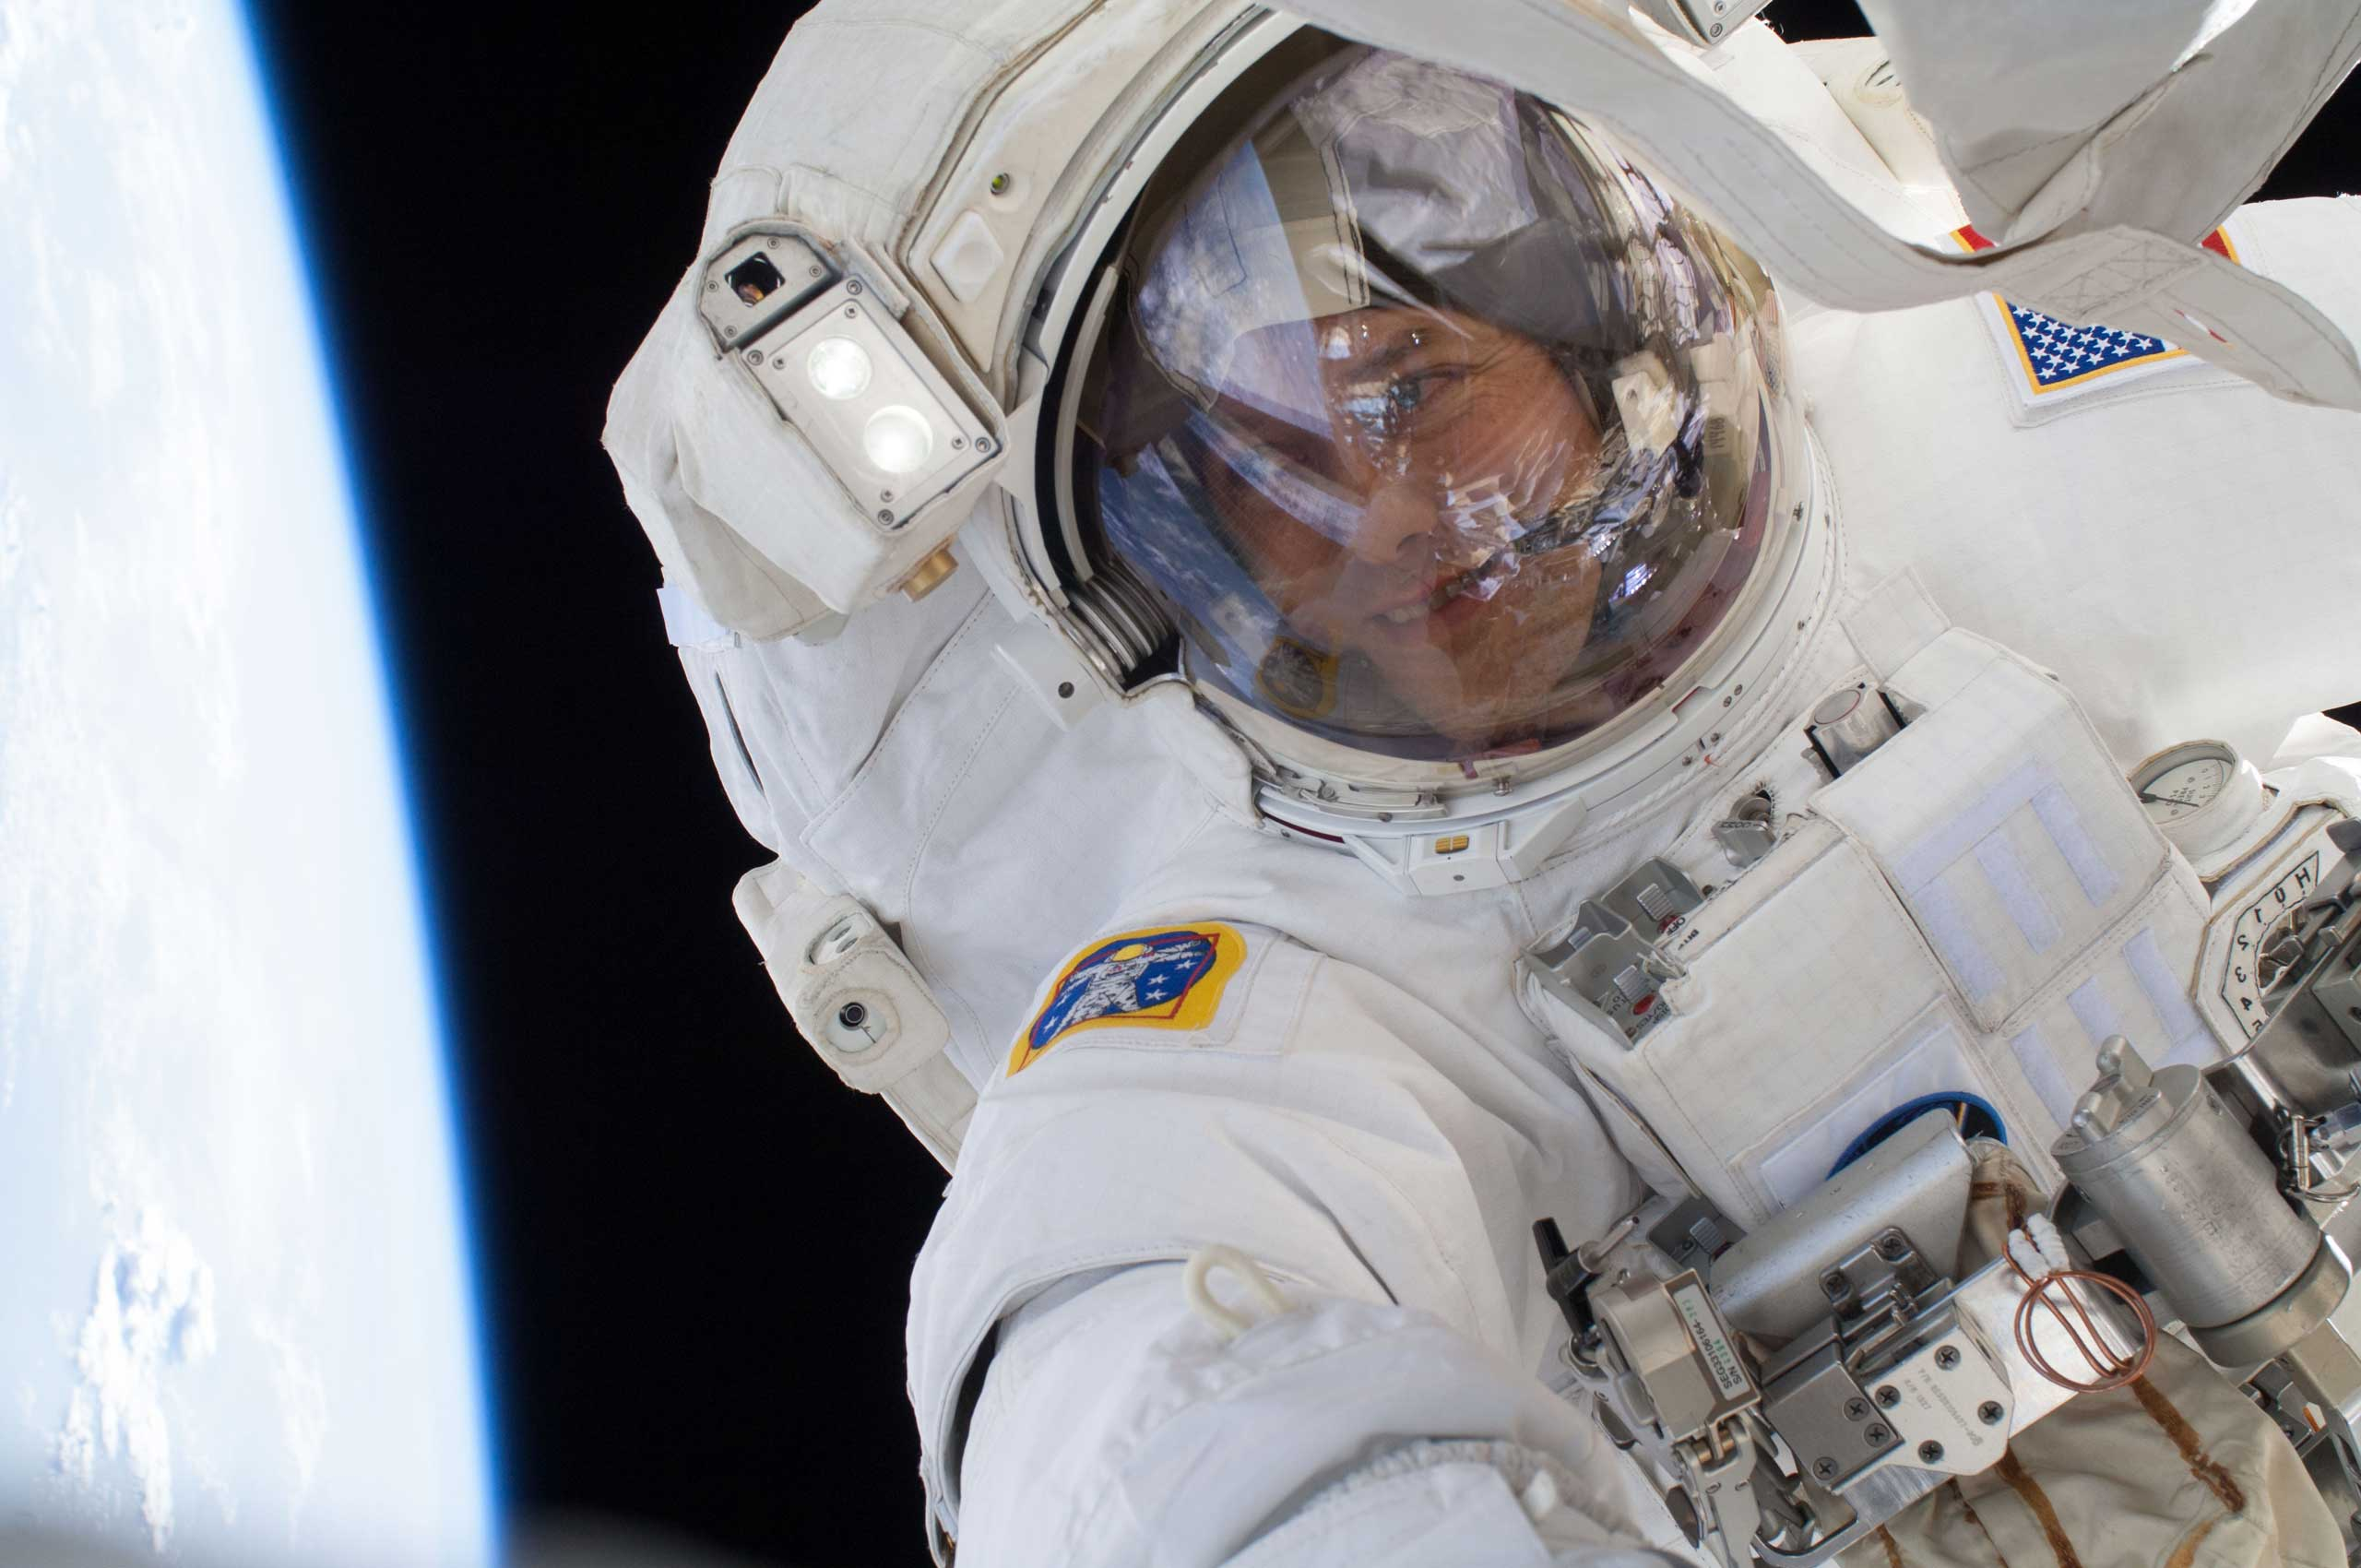 Expedition 35 astronaut Tom Marshburn takes a selfie during a spacewalk on May 11, 2013.